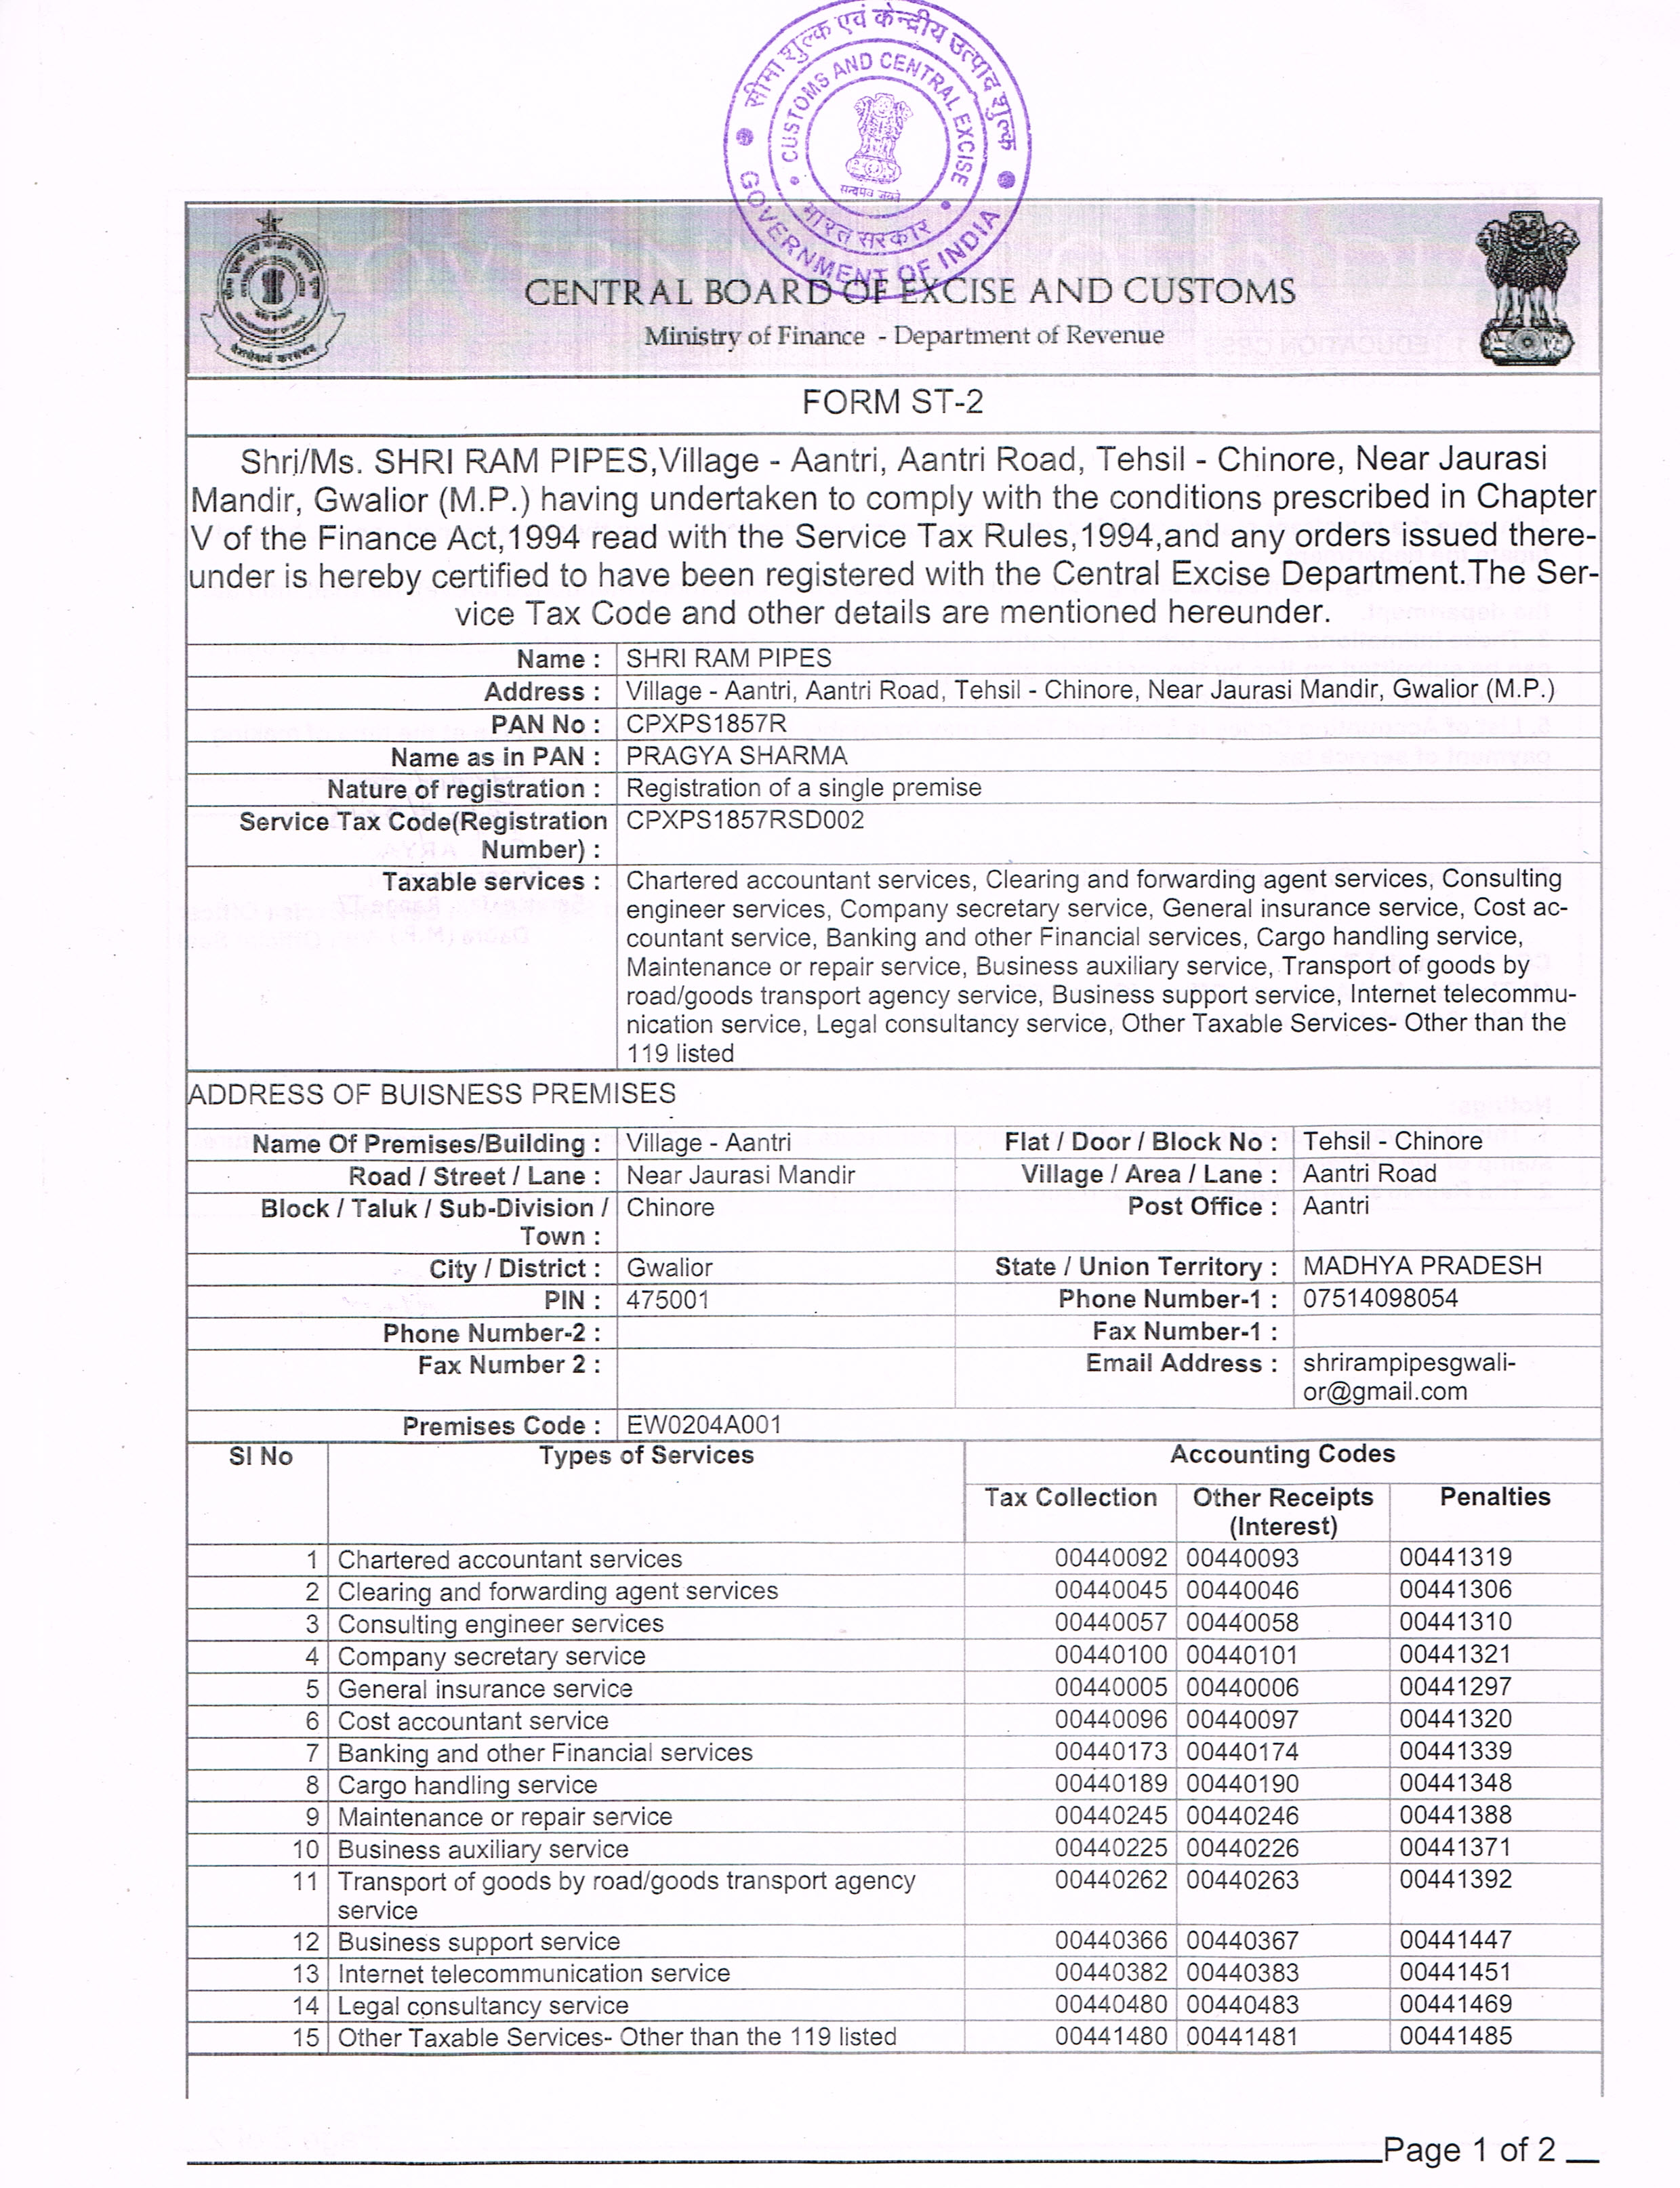 Central Excise Registration Certificate 02